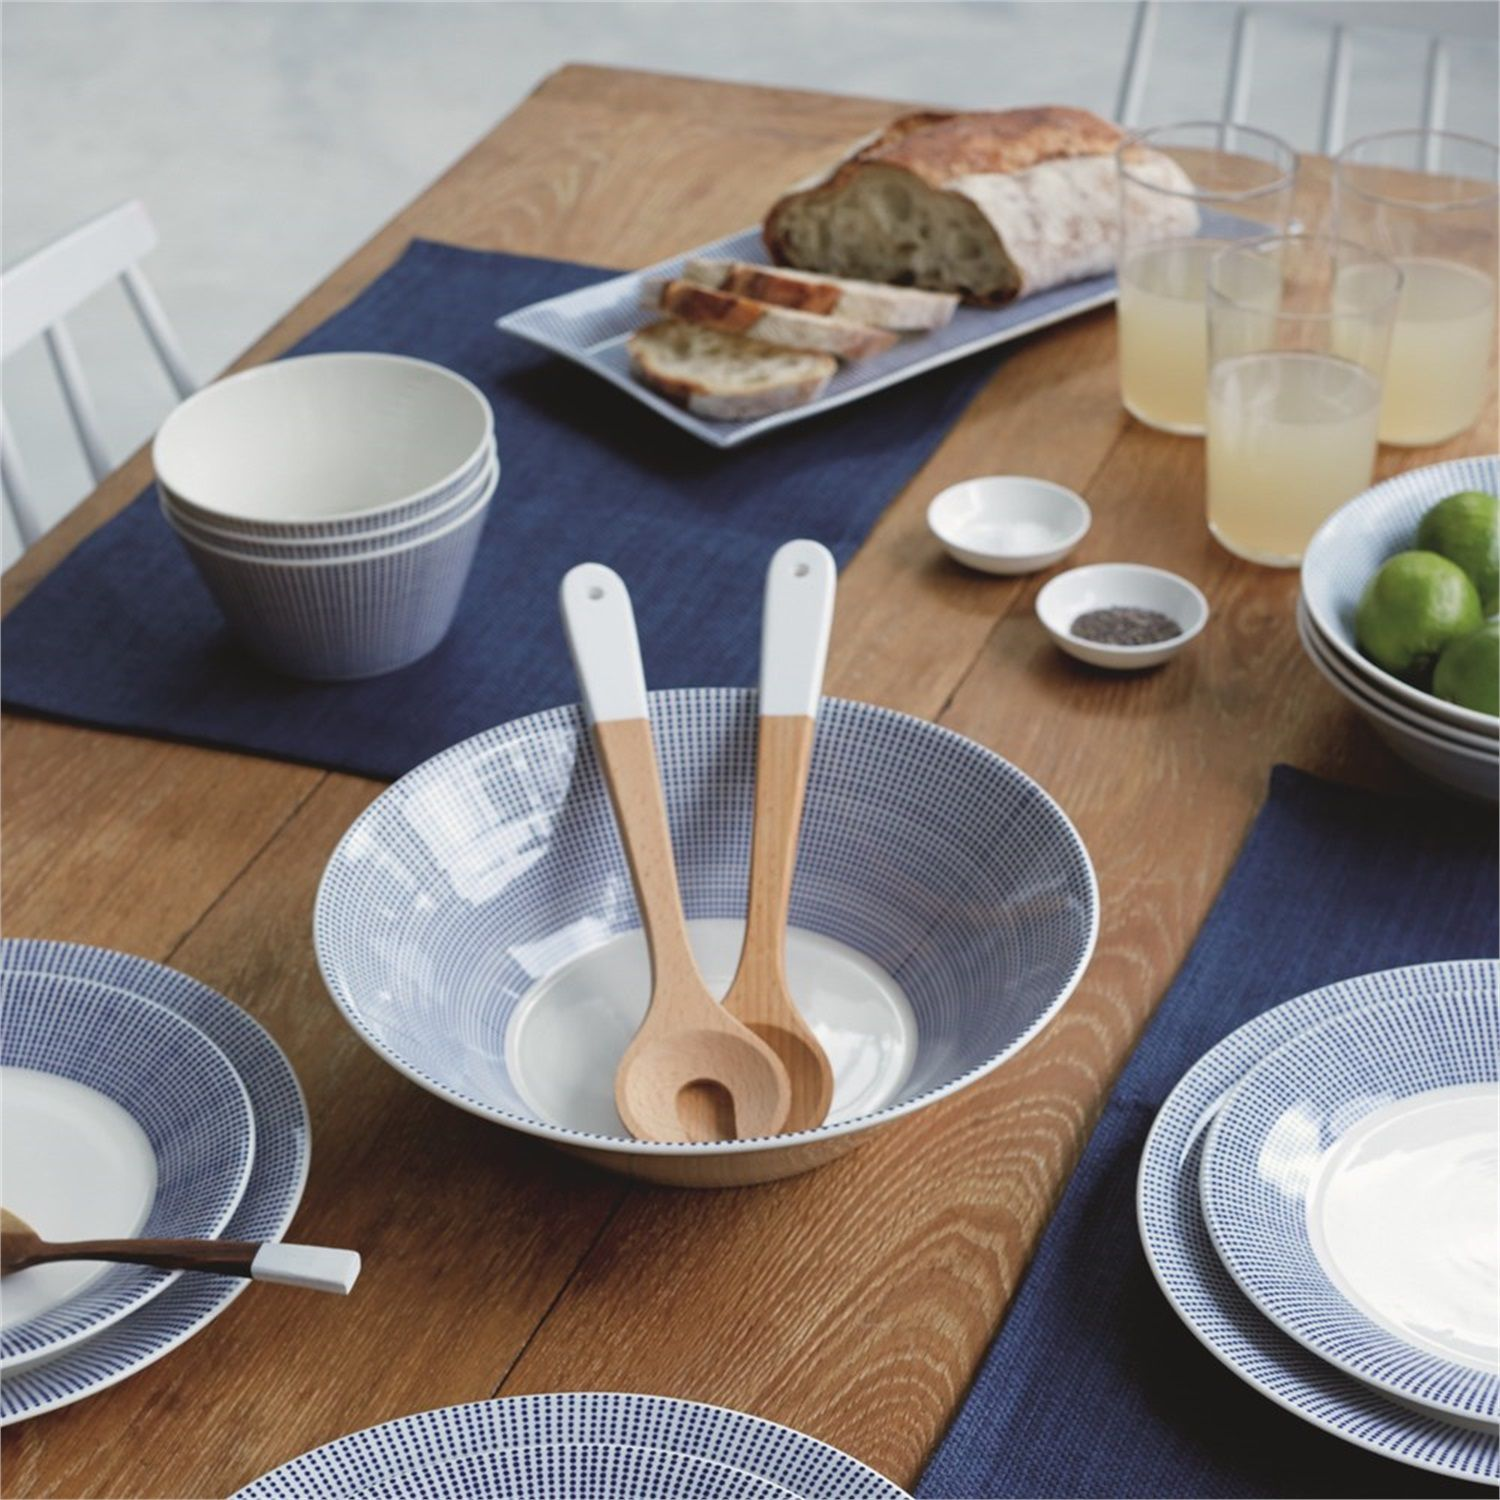 Royal_Doulton_Pastabord_Pacific_Dot_Sfeer.jpg